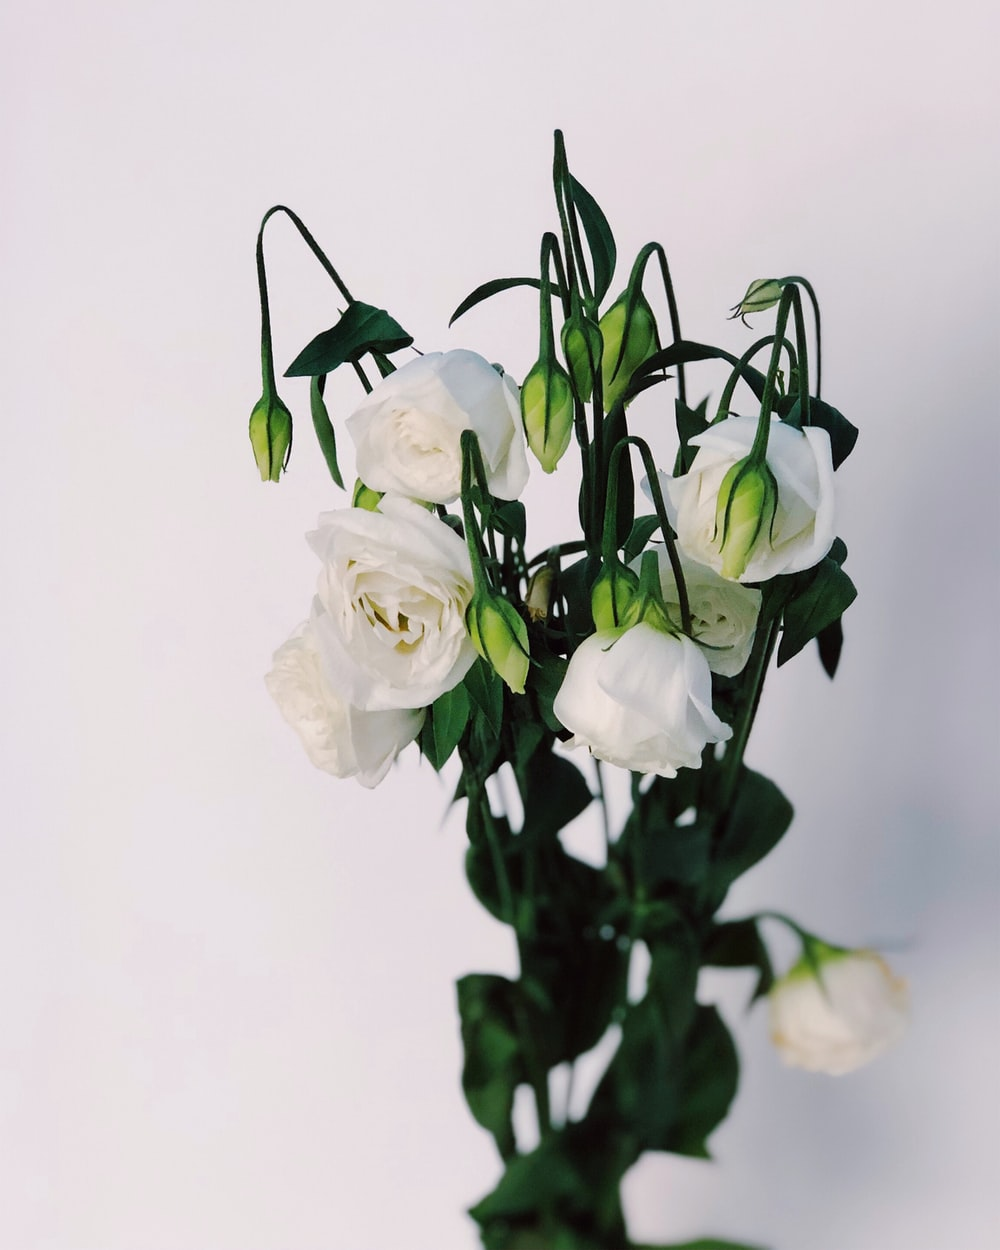 white rose flowers close-up photography